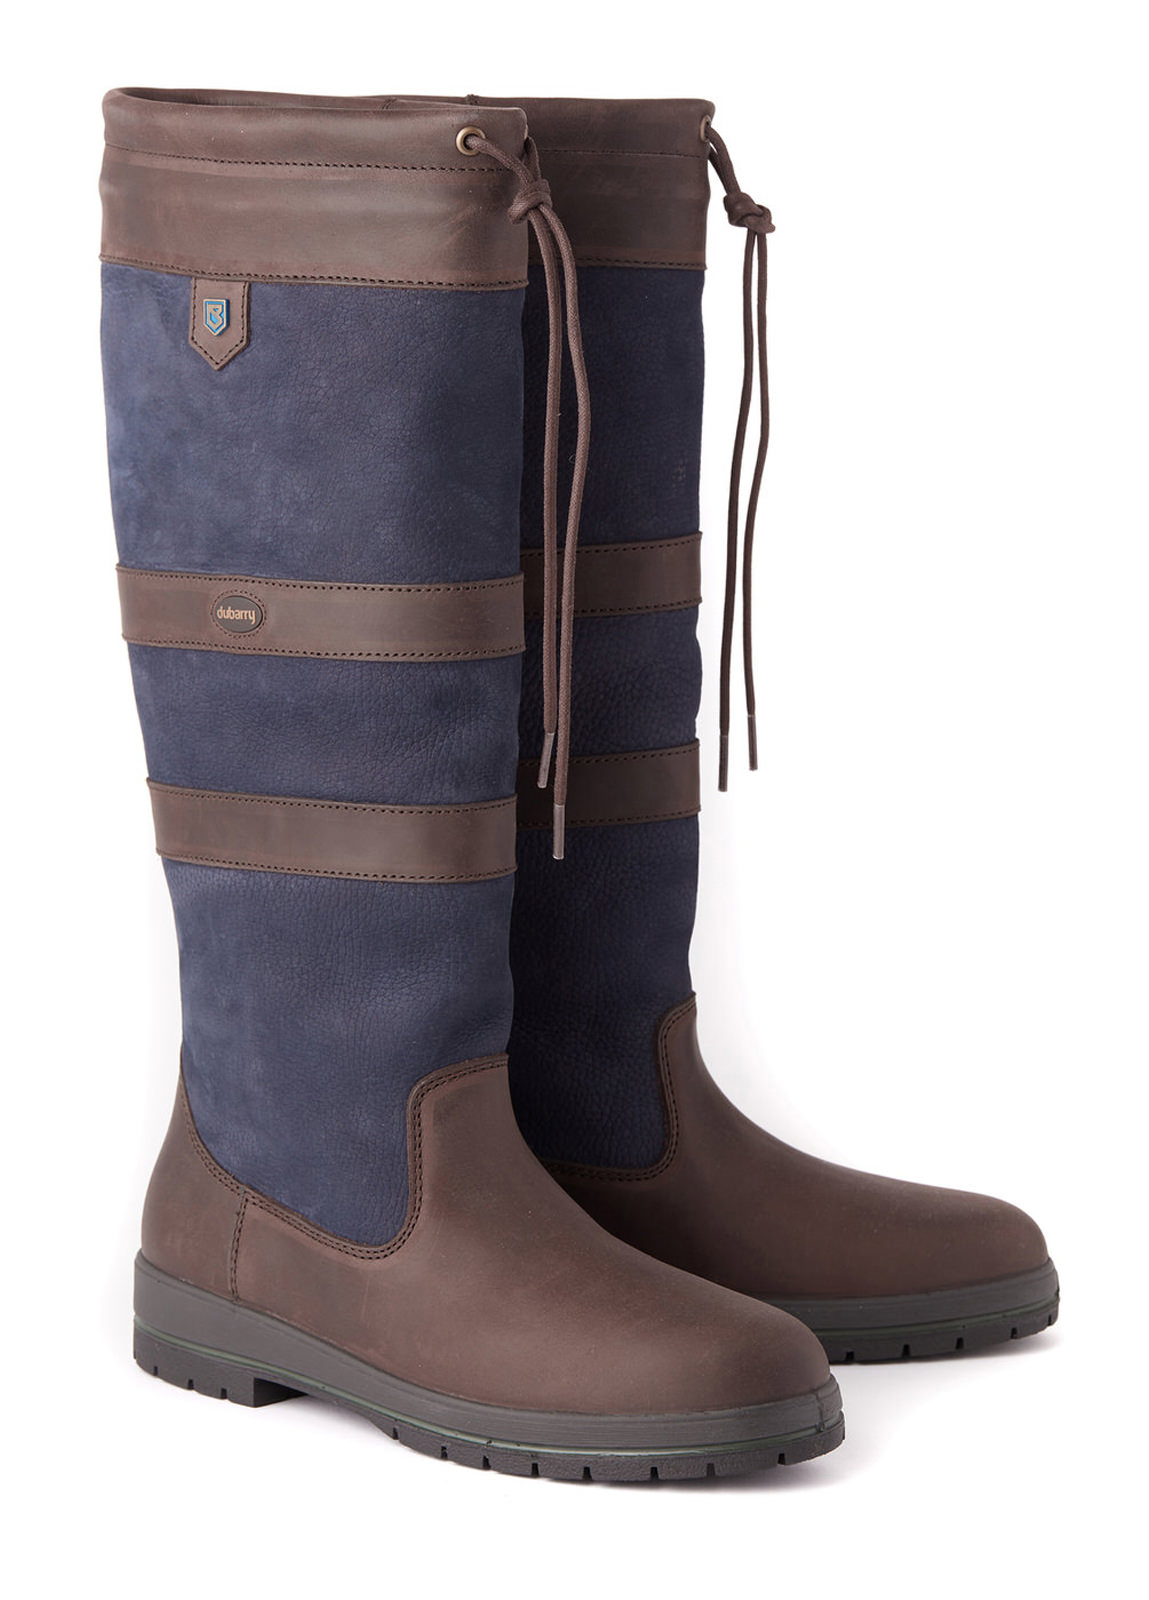 Galway ExtraFit™ Country Boot - Navy/Brown